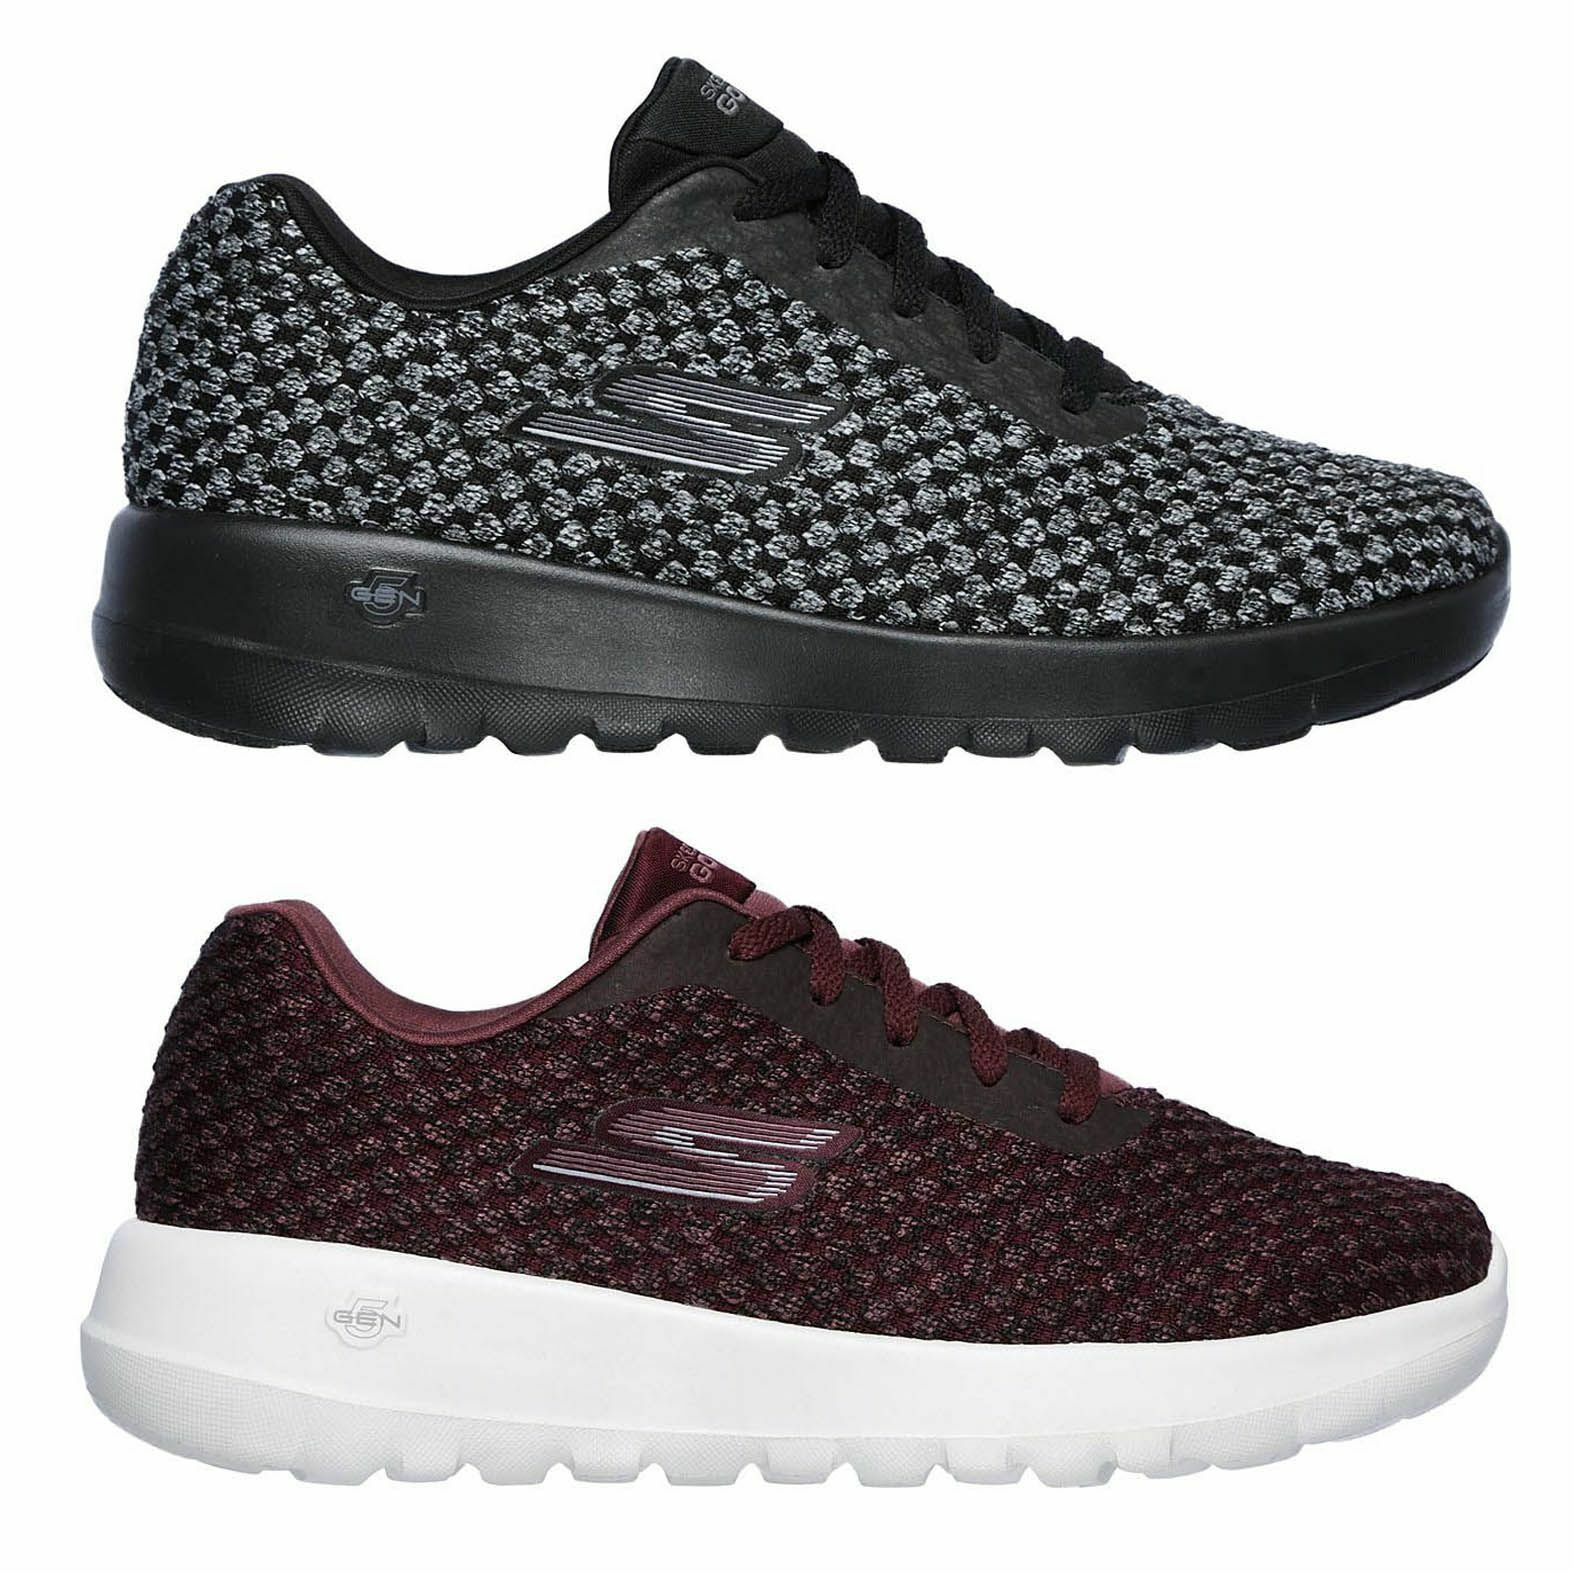 Skechers Go Walk Joy Pivotal Ladies Walking shoes Air Cooled Insole Trainers